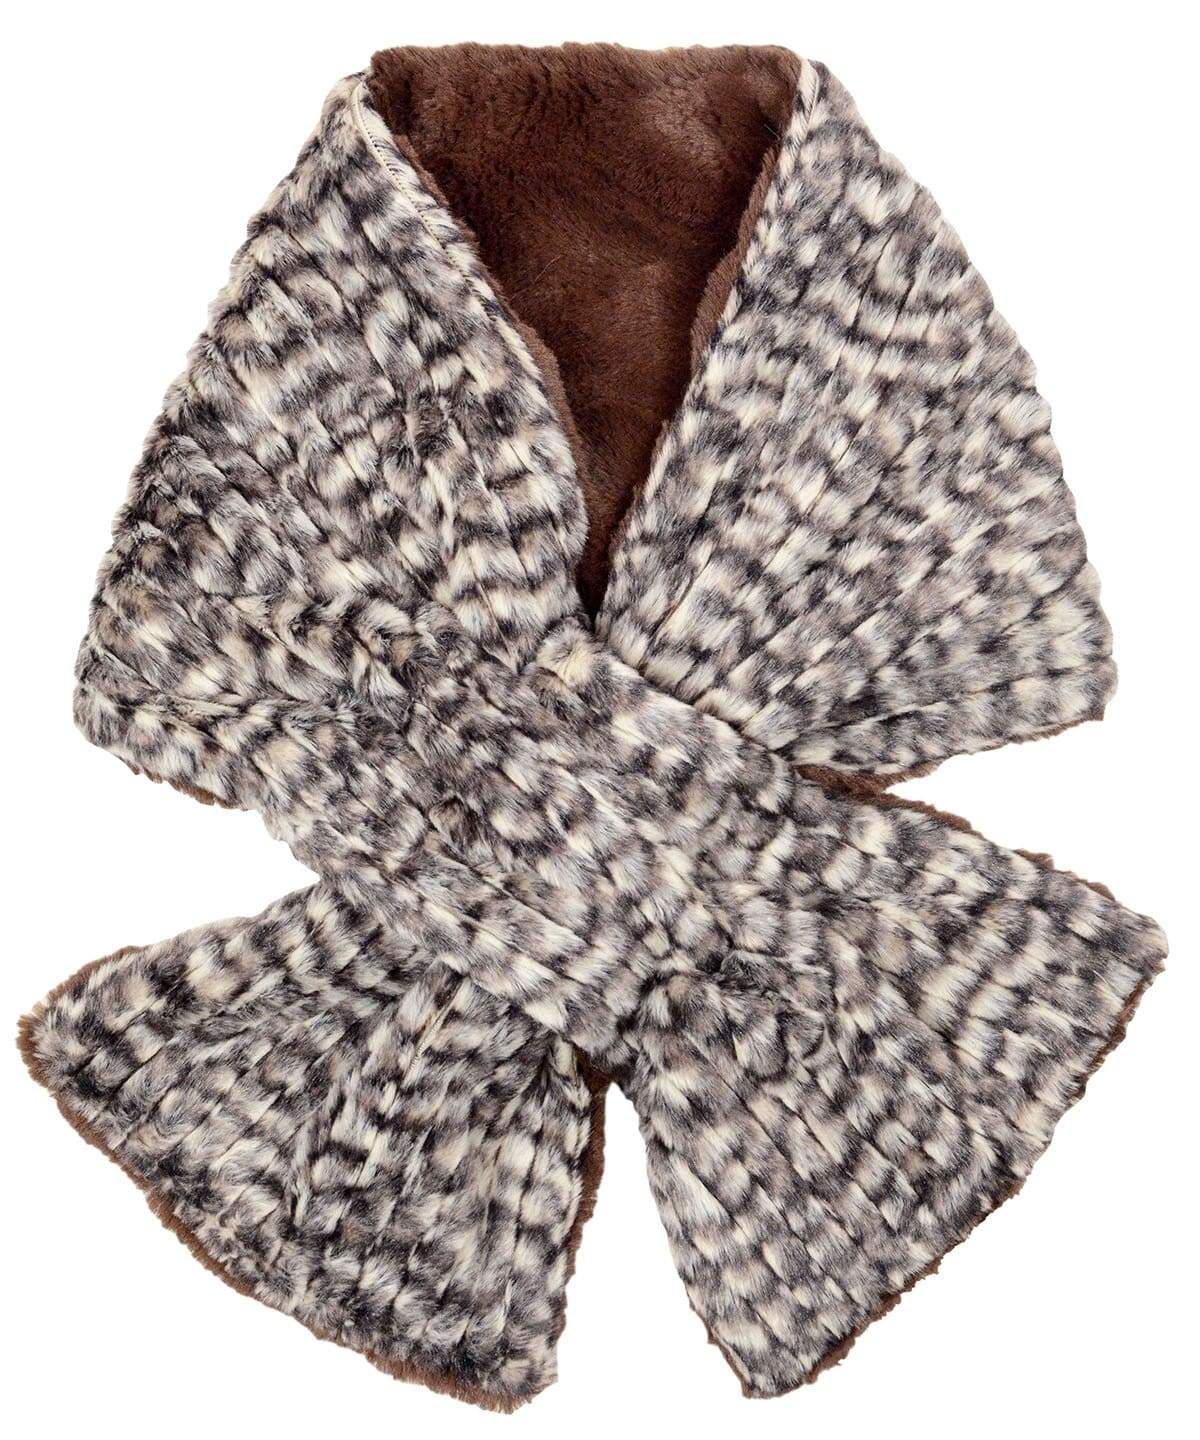 Pull-Thru Scarf - Cobblestone in Brown/Cream Faux Fur (Only One with Chocolate Left!)